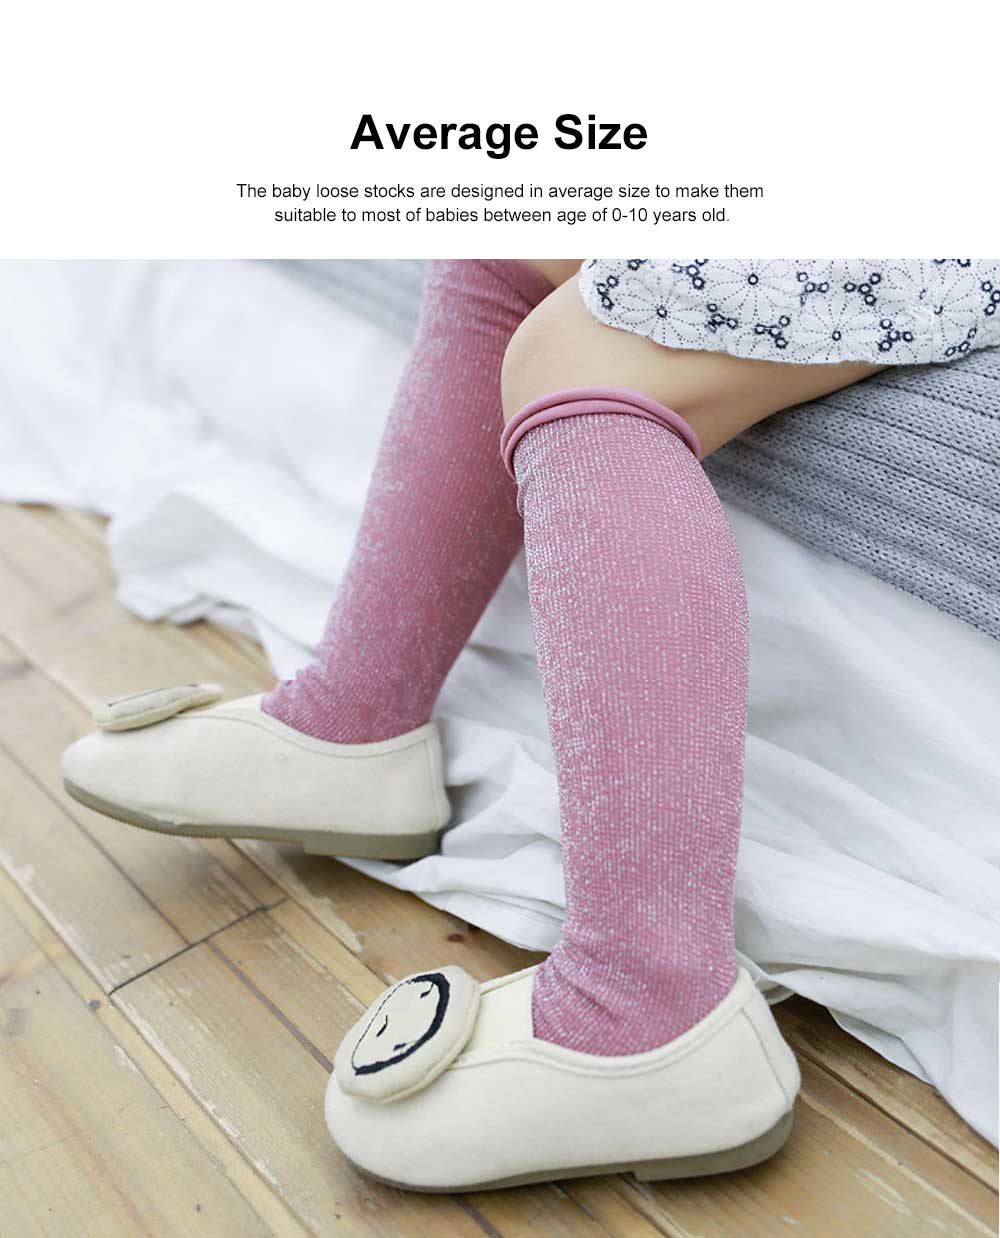 Pure Cotton Long Stockings for Kids Wear in Spring Summer, Purl Loose Socks for Babies, Thin Knee-socks Children's Stockings 1